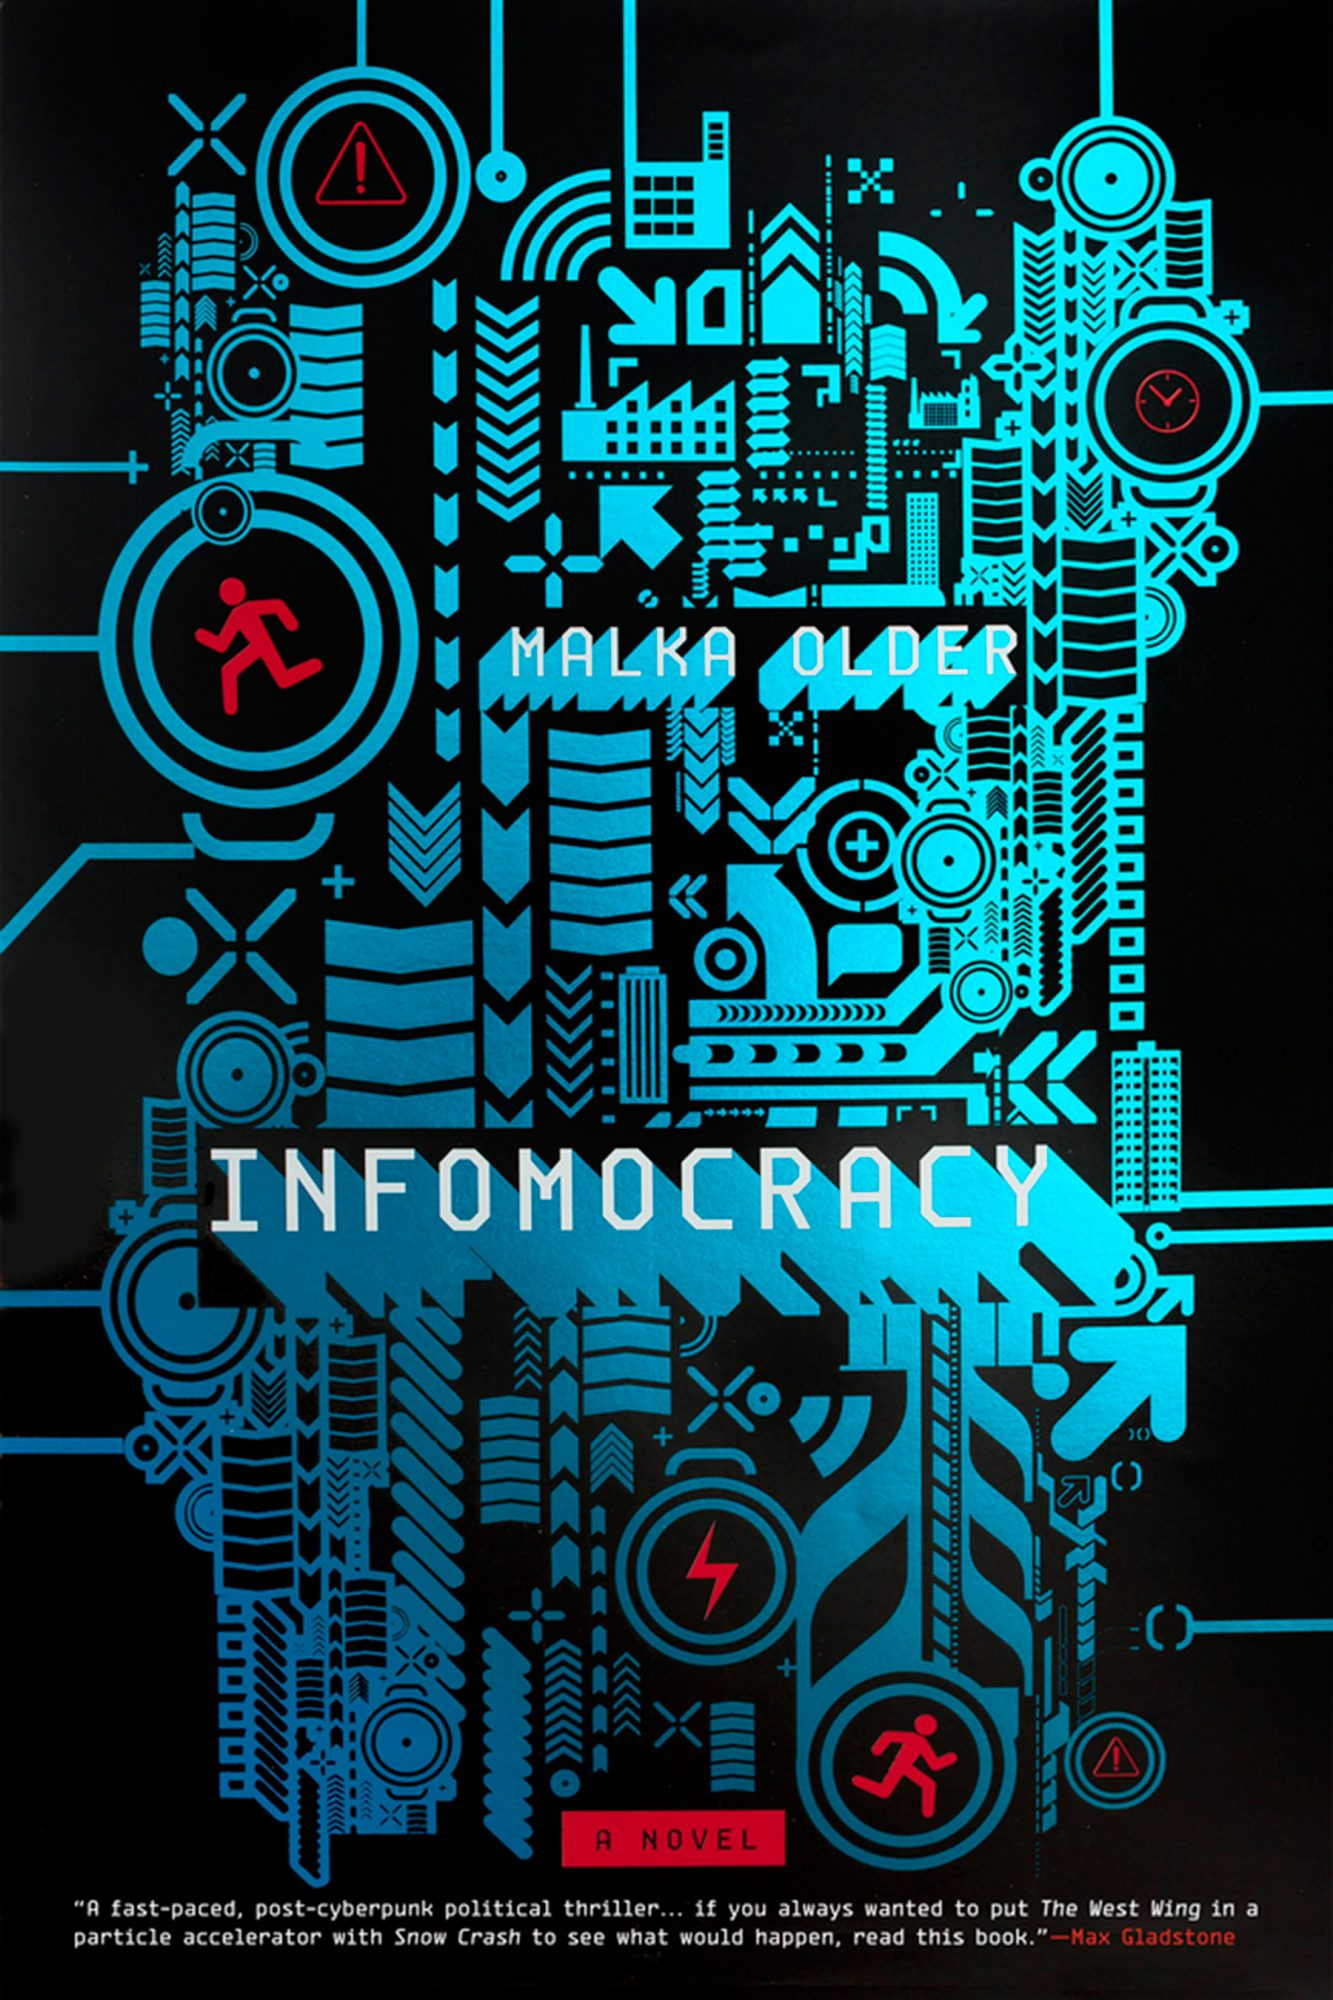 Malka-Older—infomocracy